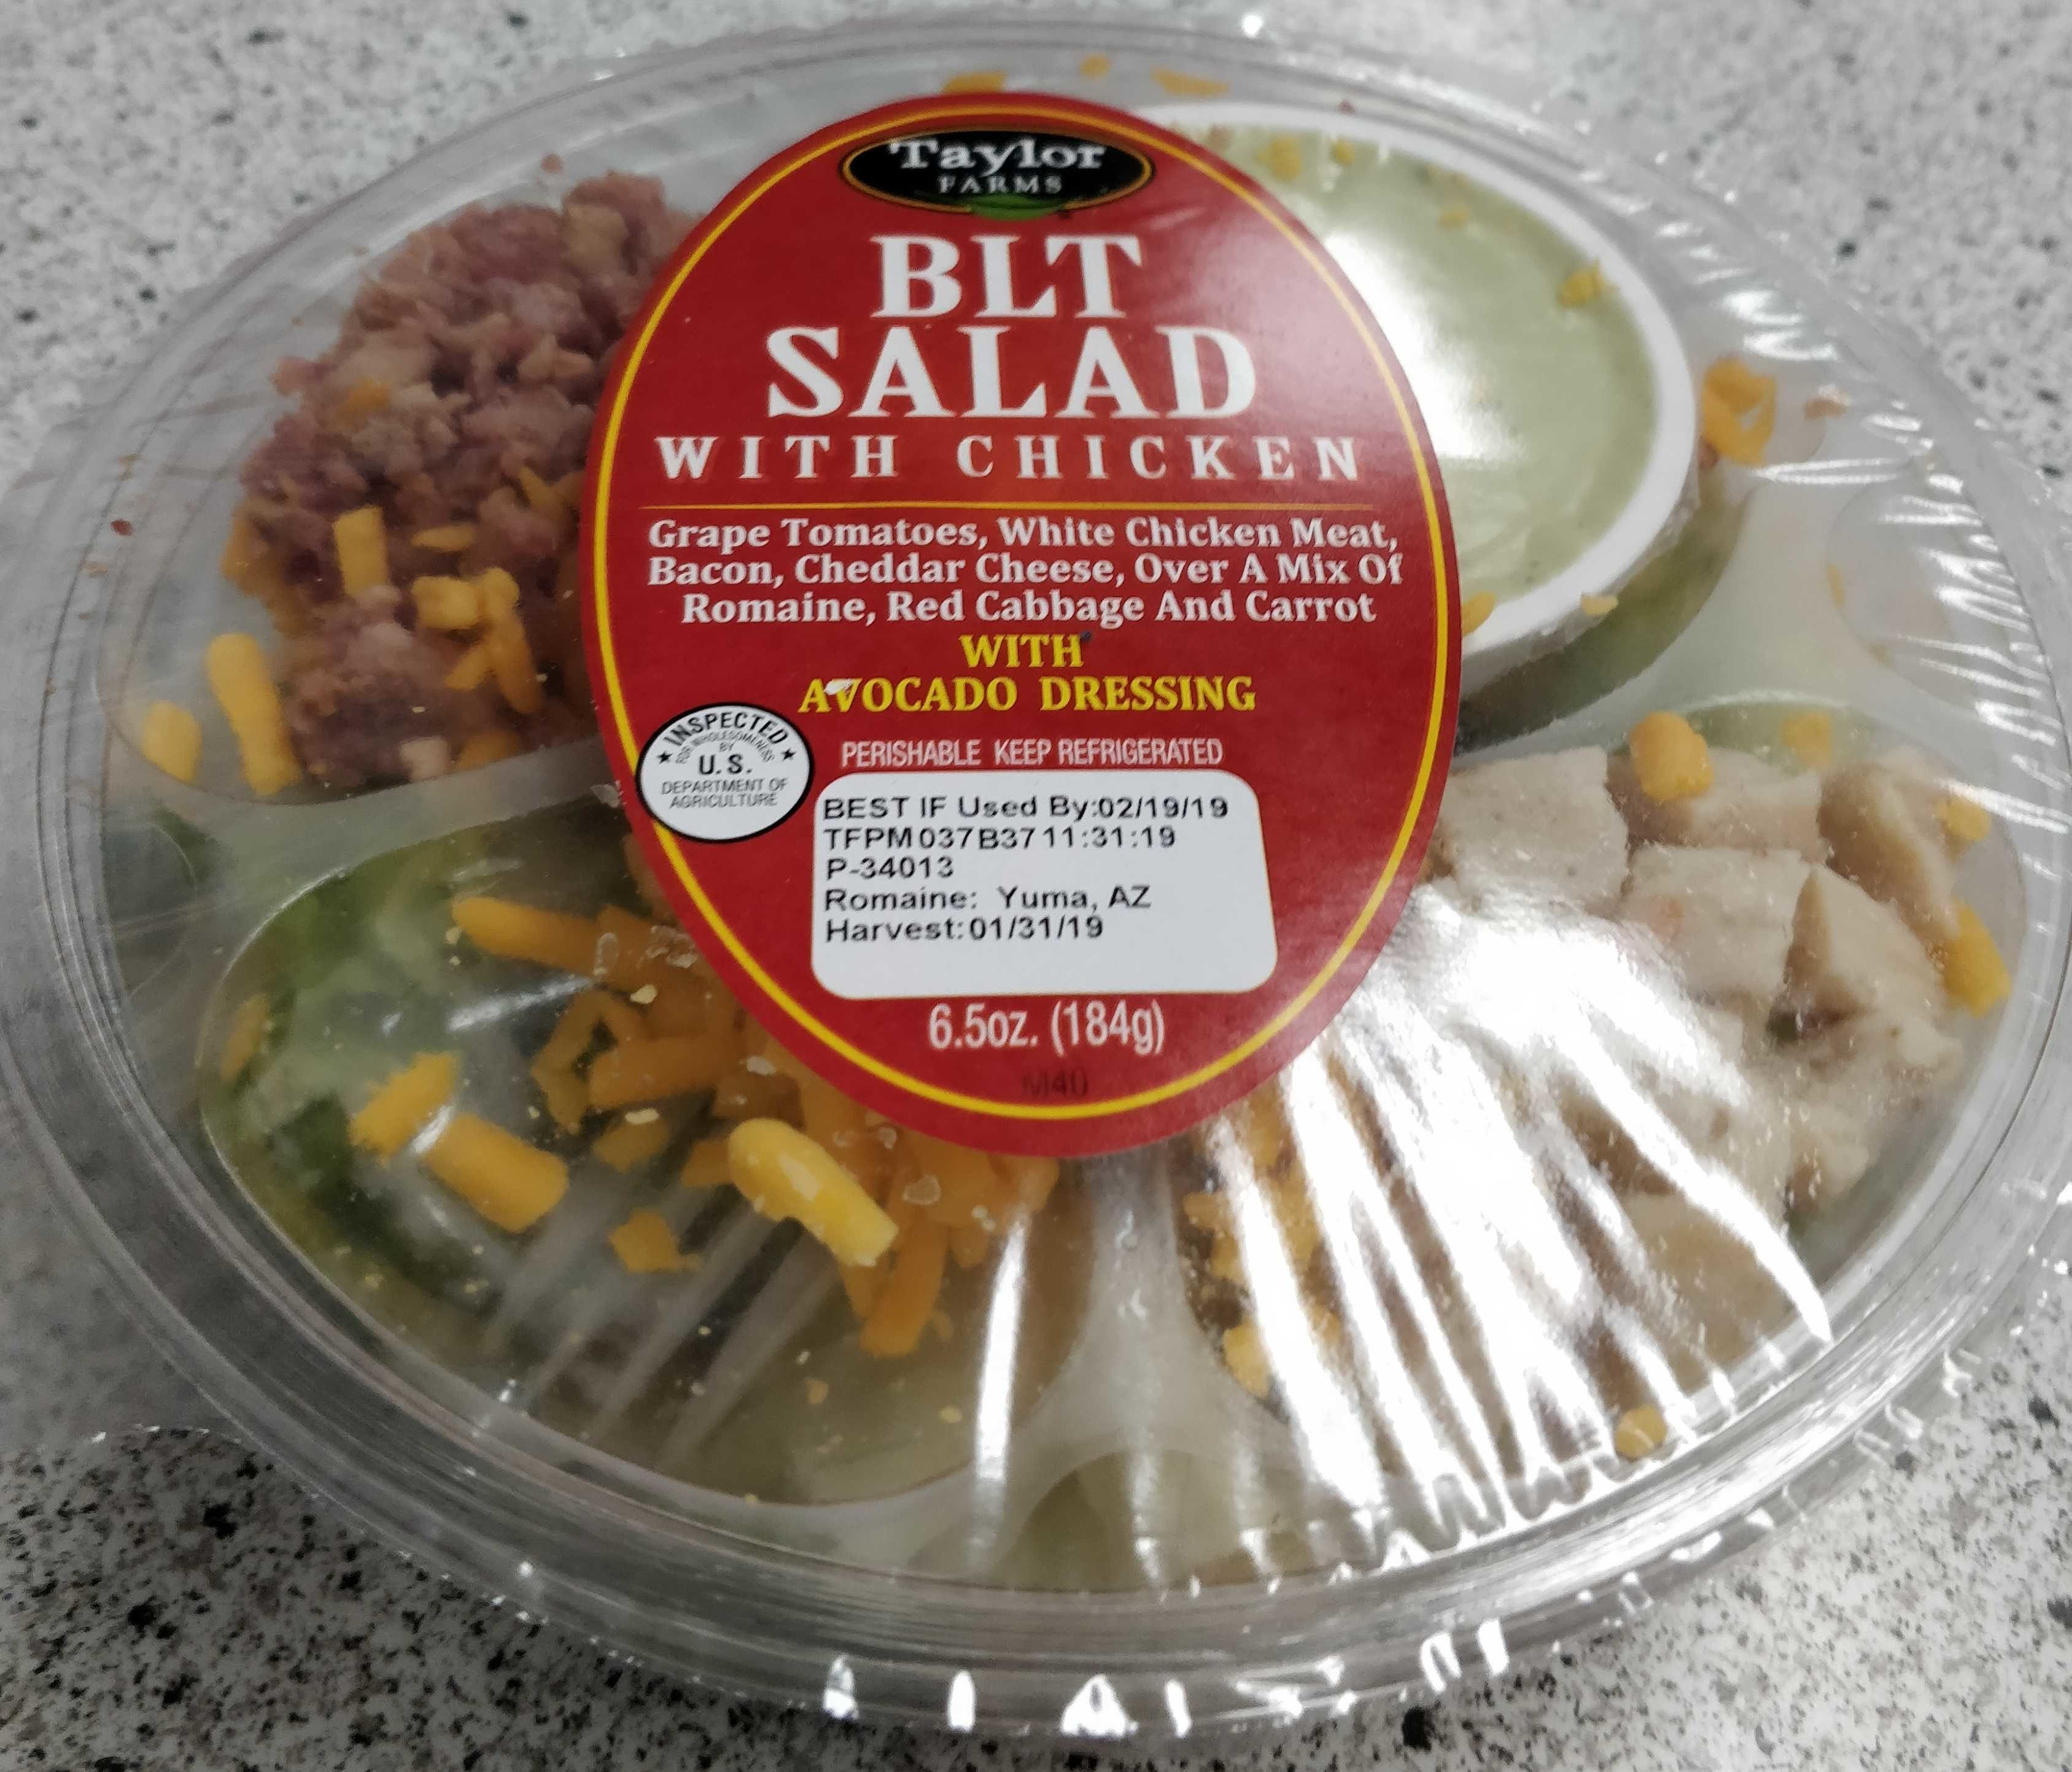 Blt salad with chicken - Product - en